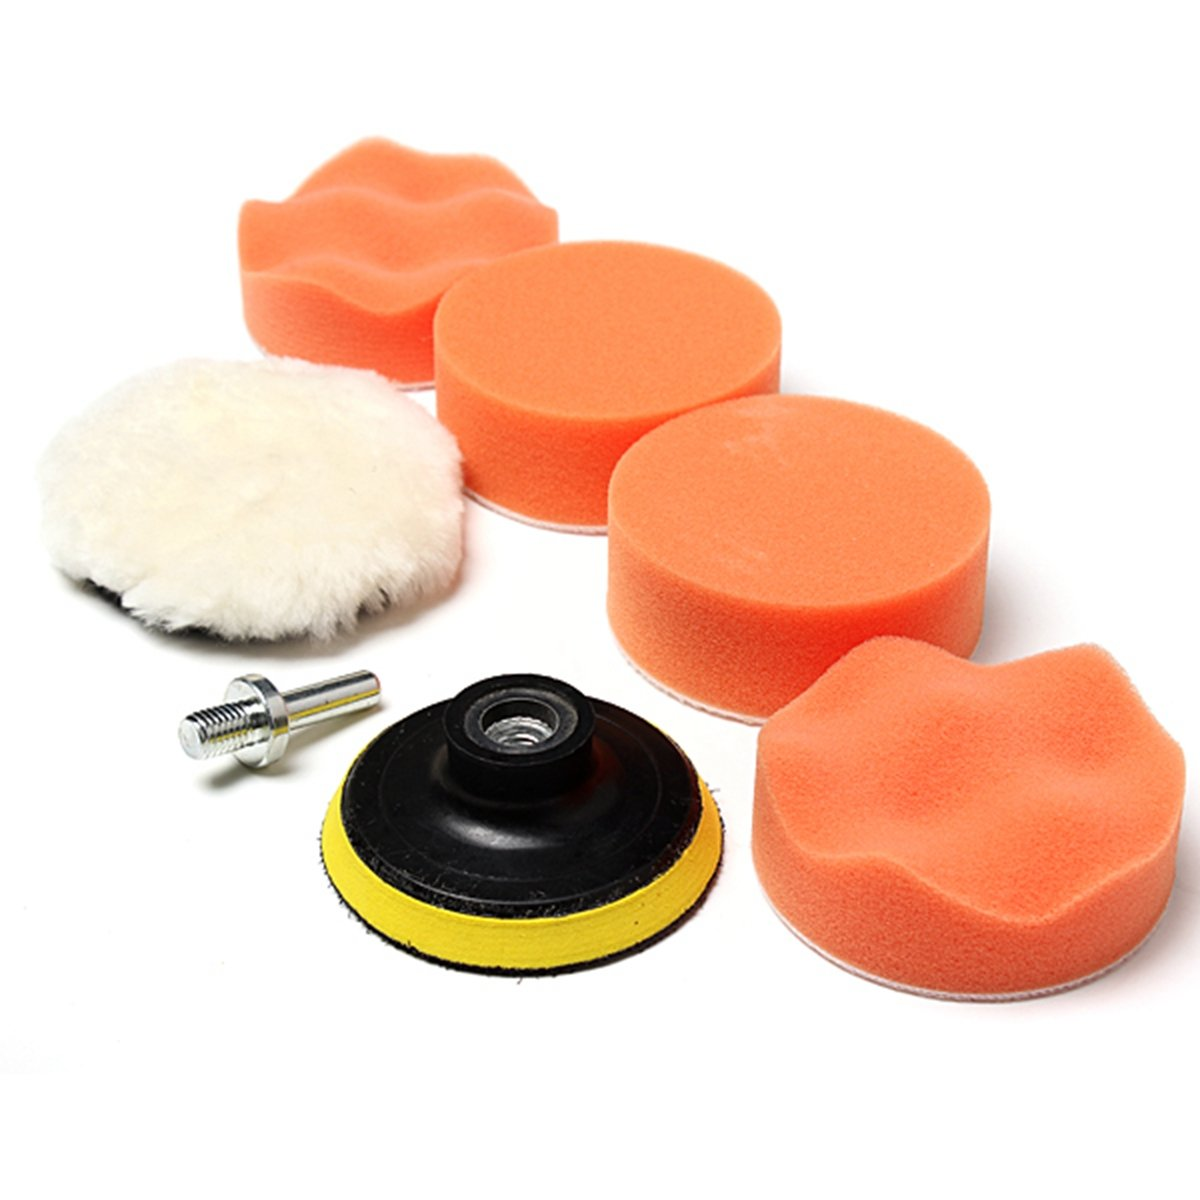 KINGSO High Gross Buffing Pad Kit For Car Sanding